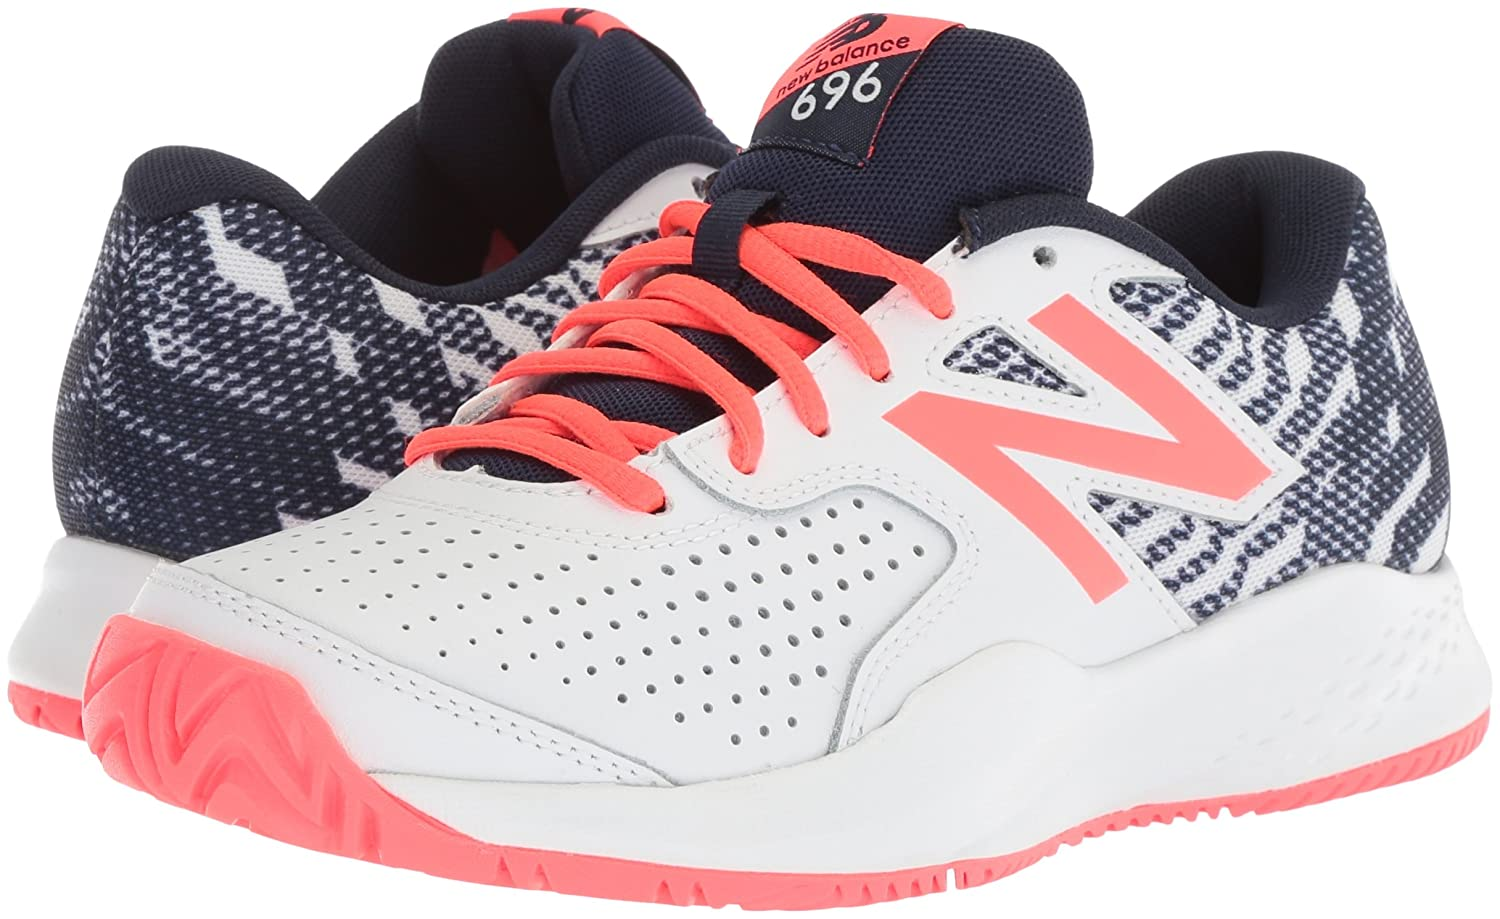 another chance 65355 bc1e4 ... New Balance Women s 696v3 696v3 696v3 Tennis-Shoes B06XRSVSZD Tennis  3ab3ca